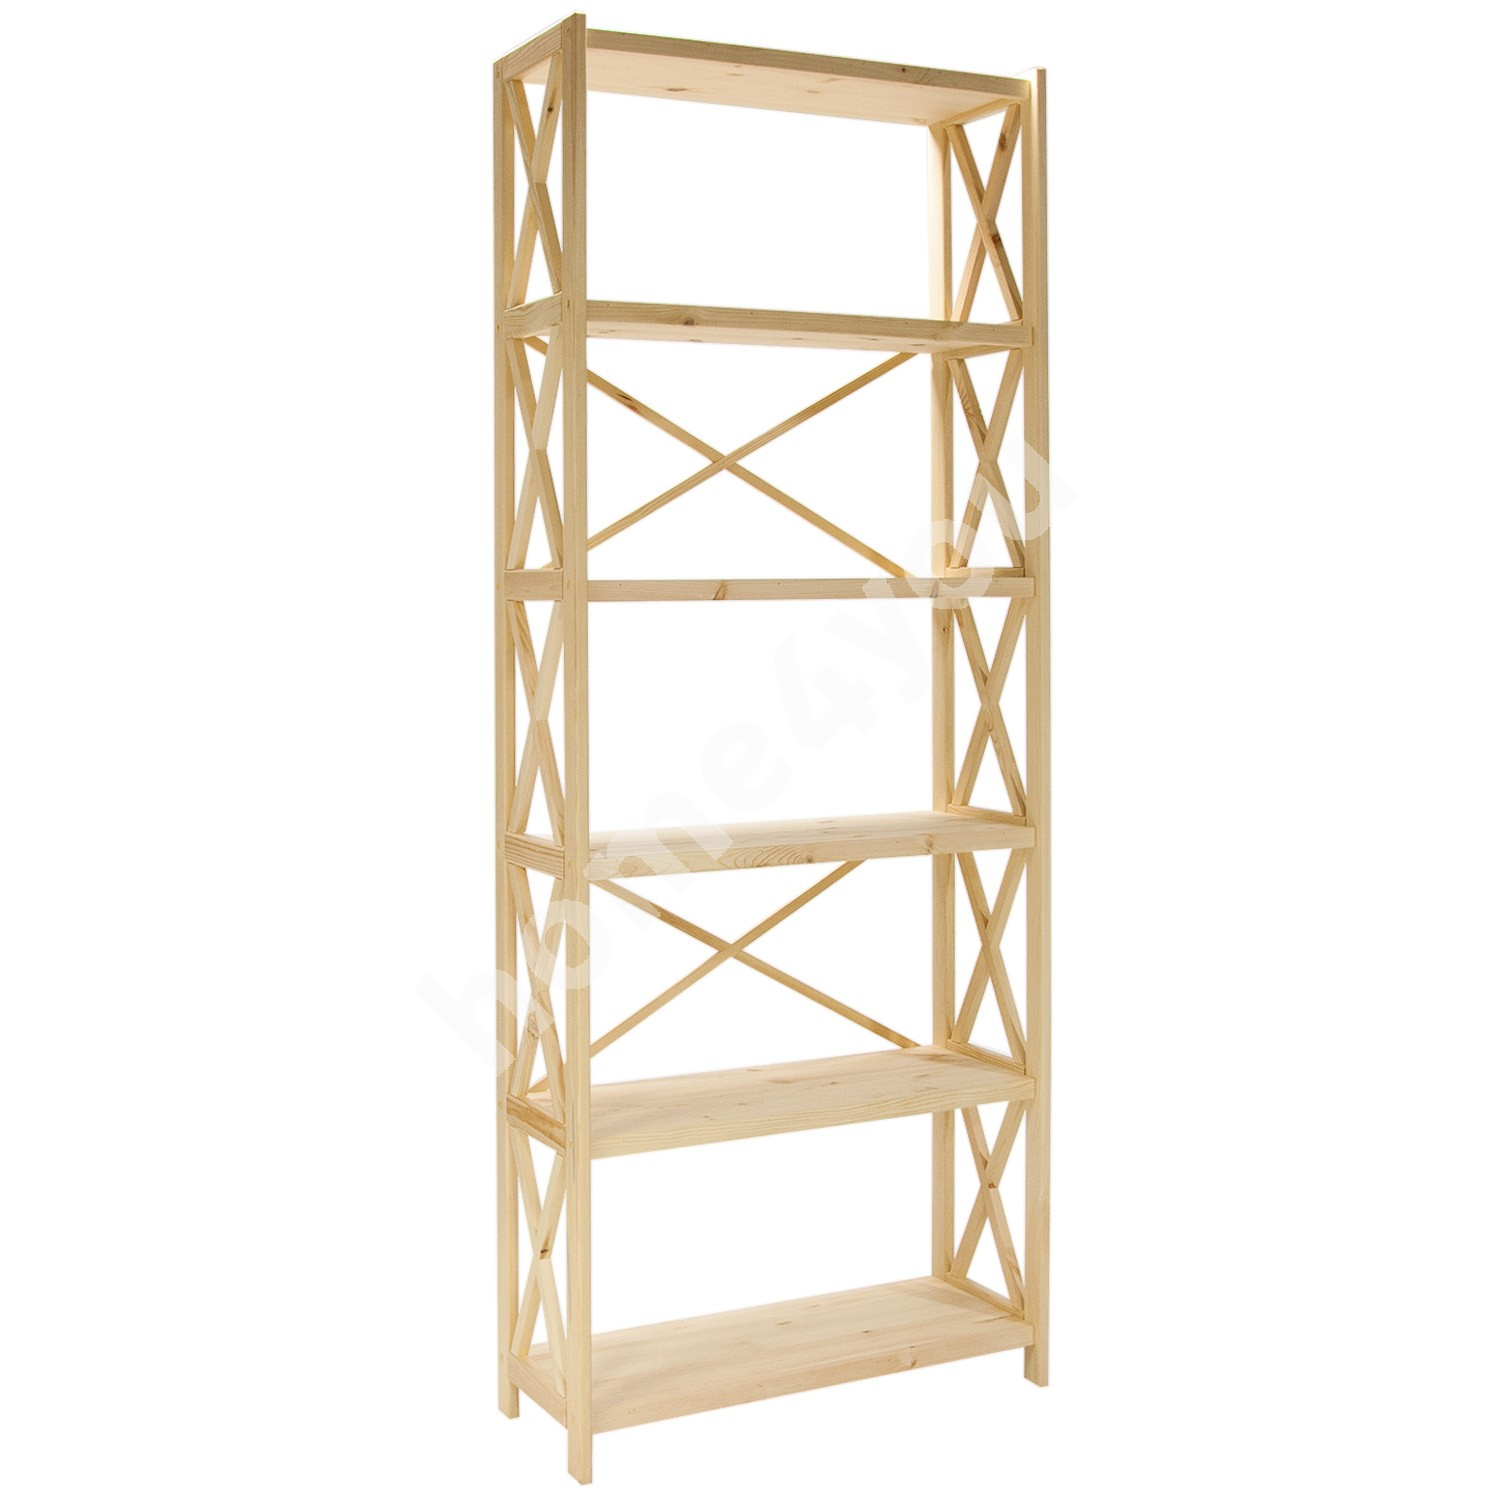 Shelf ALEX 6-tier, 80x31xH198cm, wood: pine, color: natural